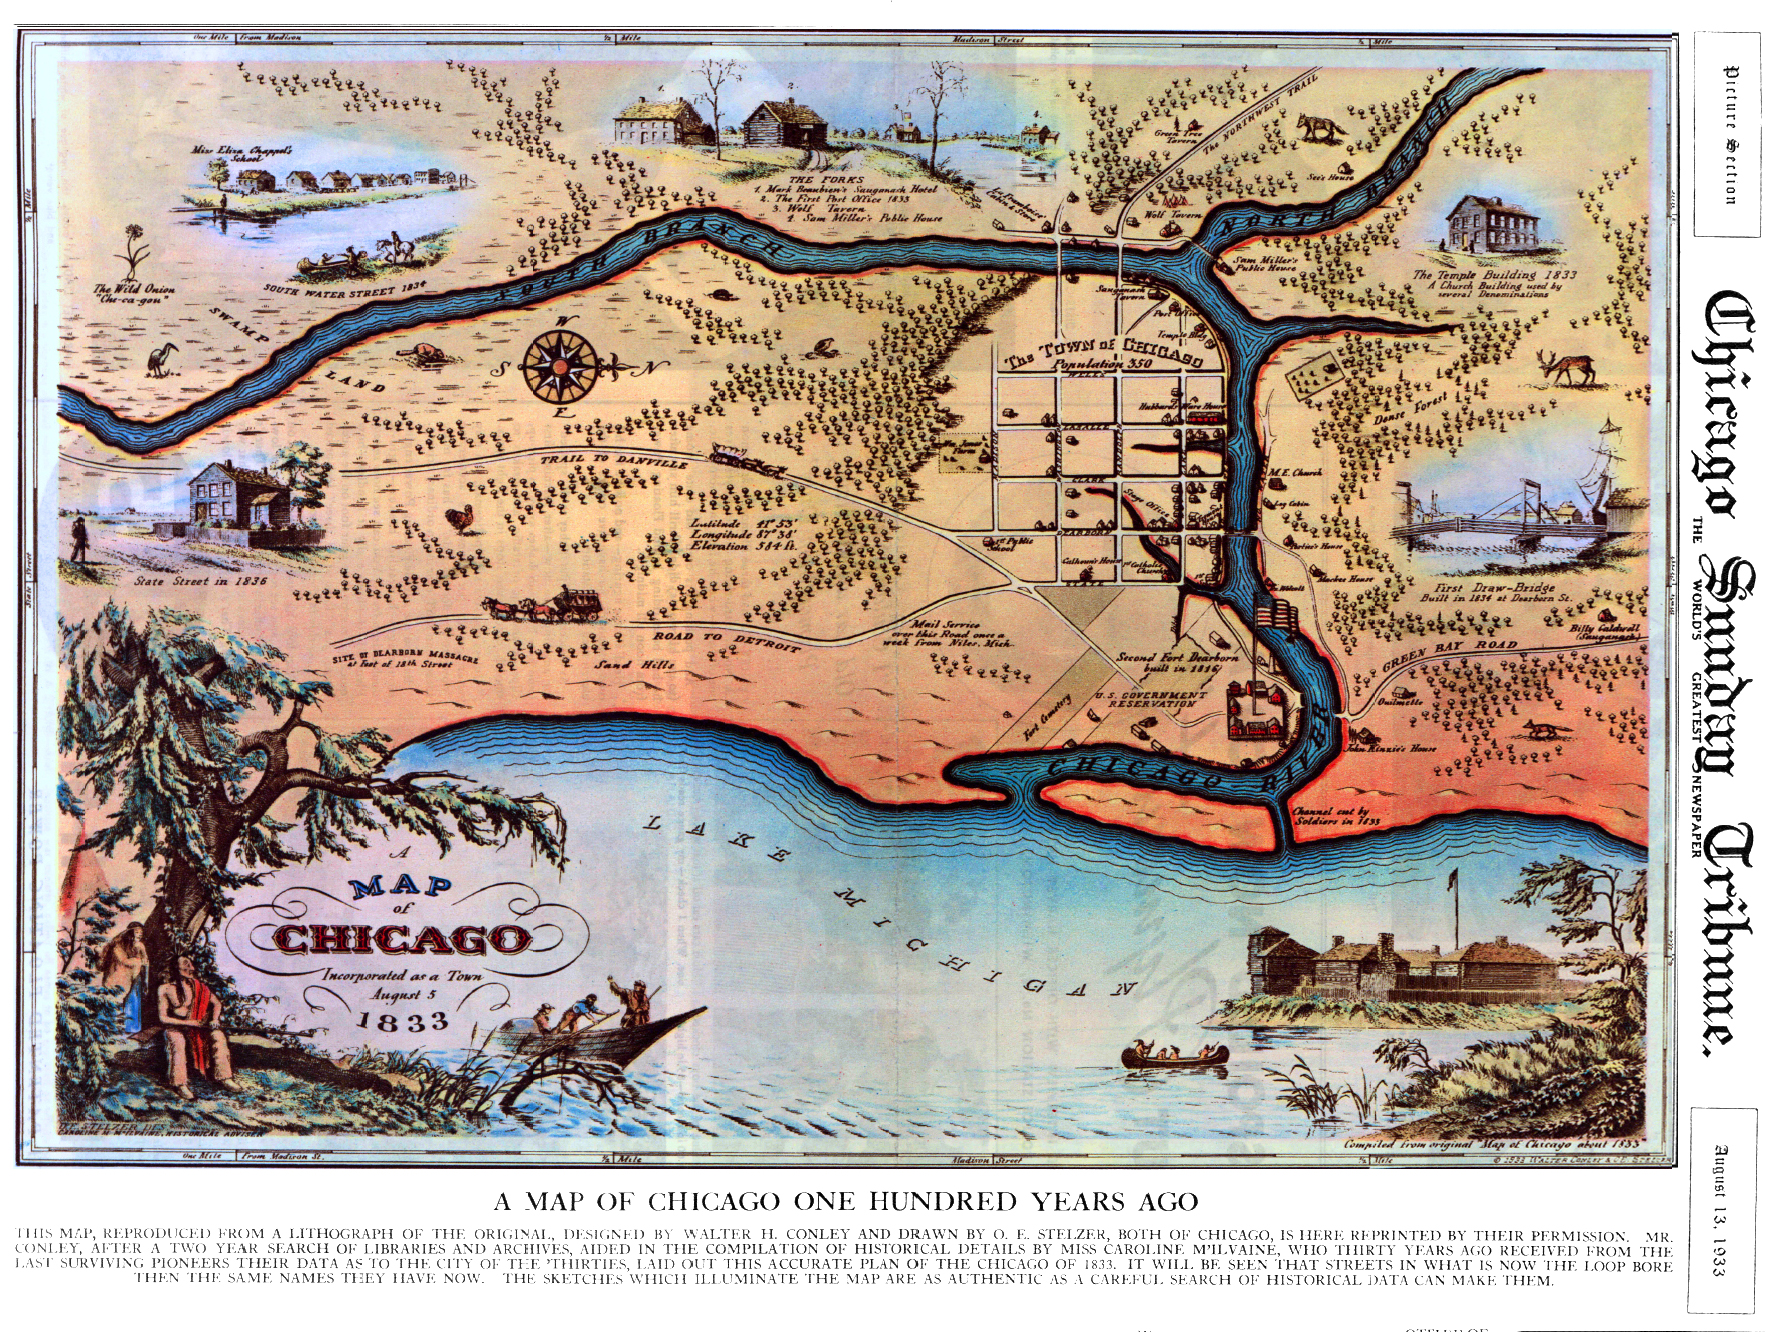 Early Chicago Streets - Chicago map river